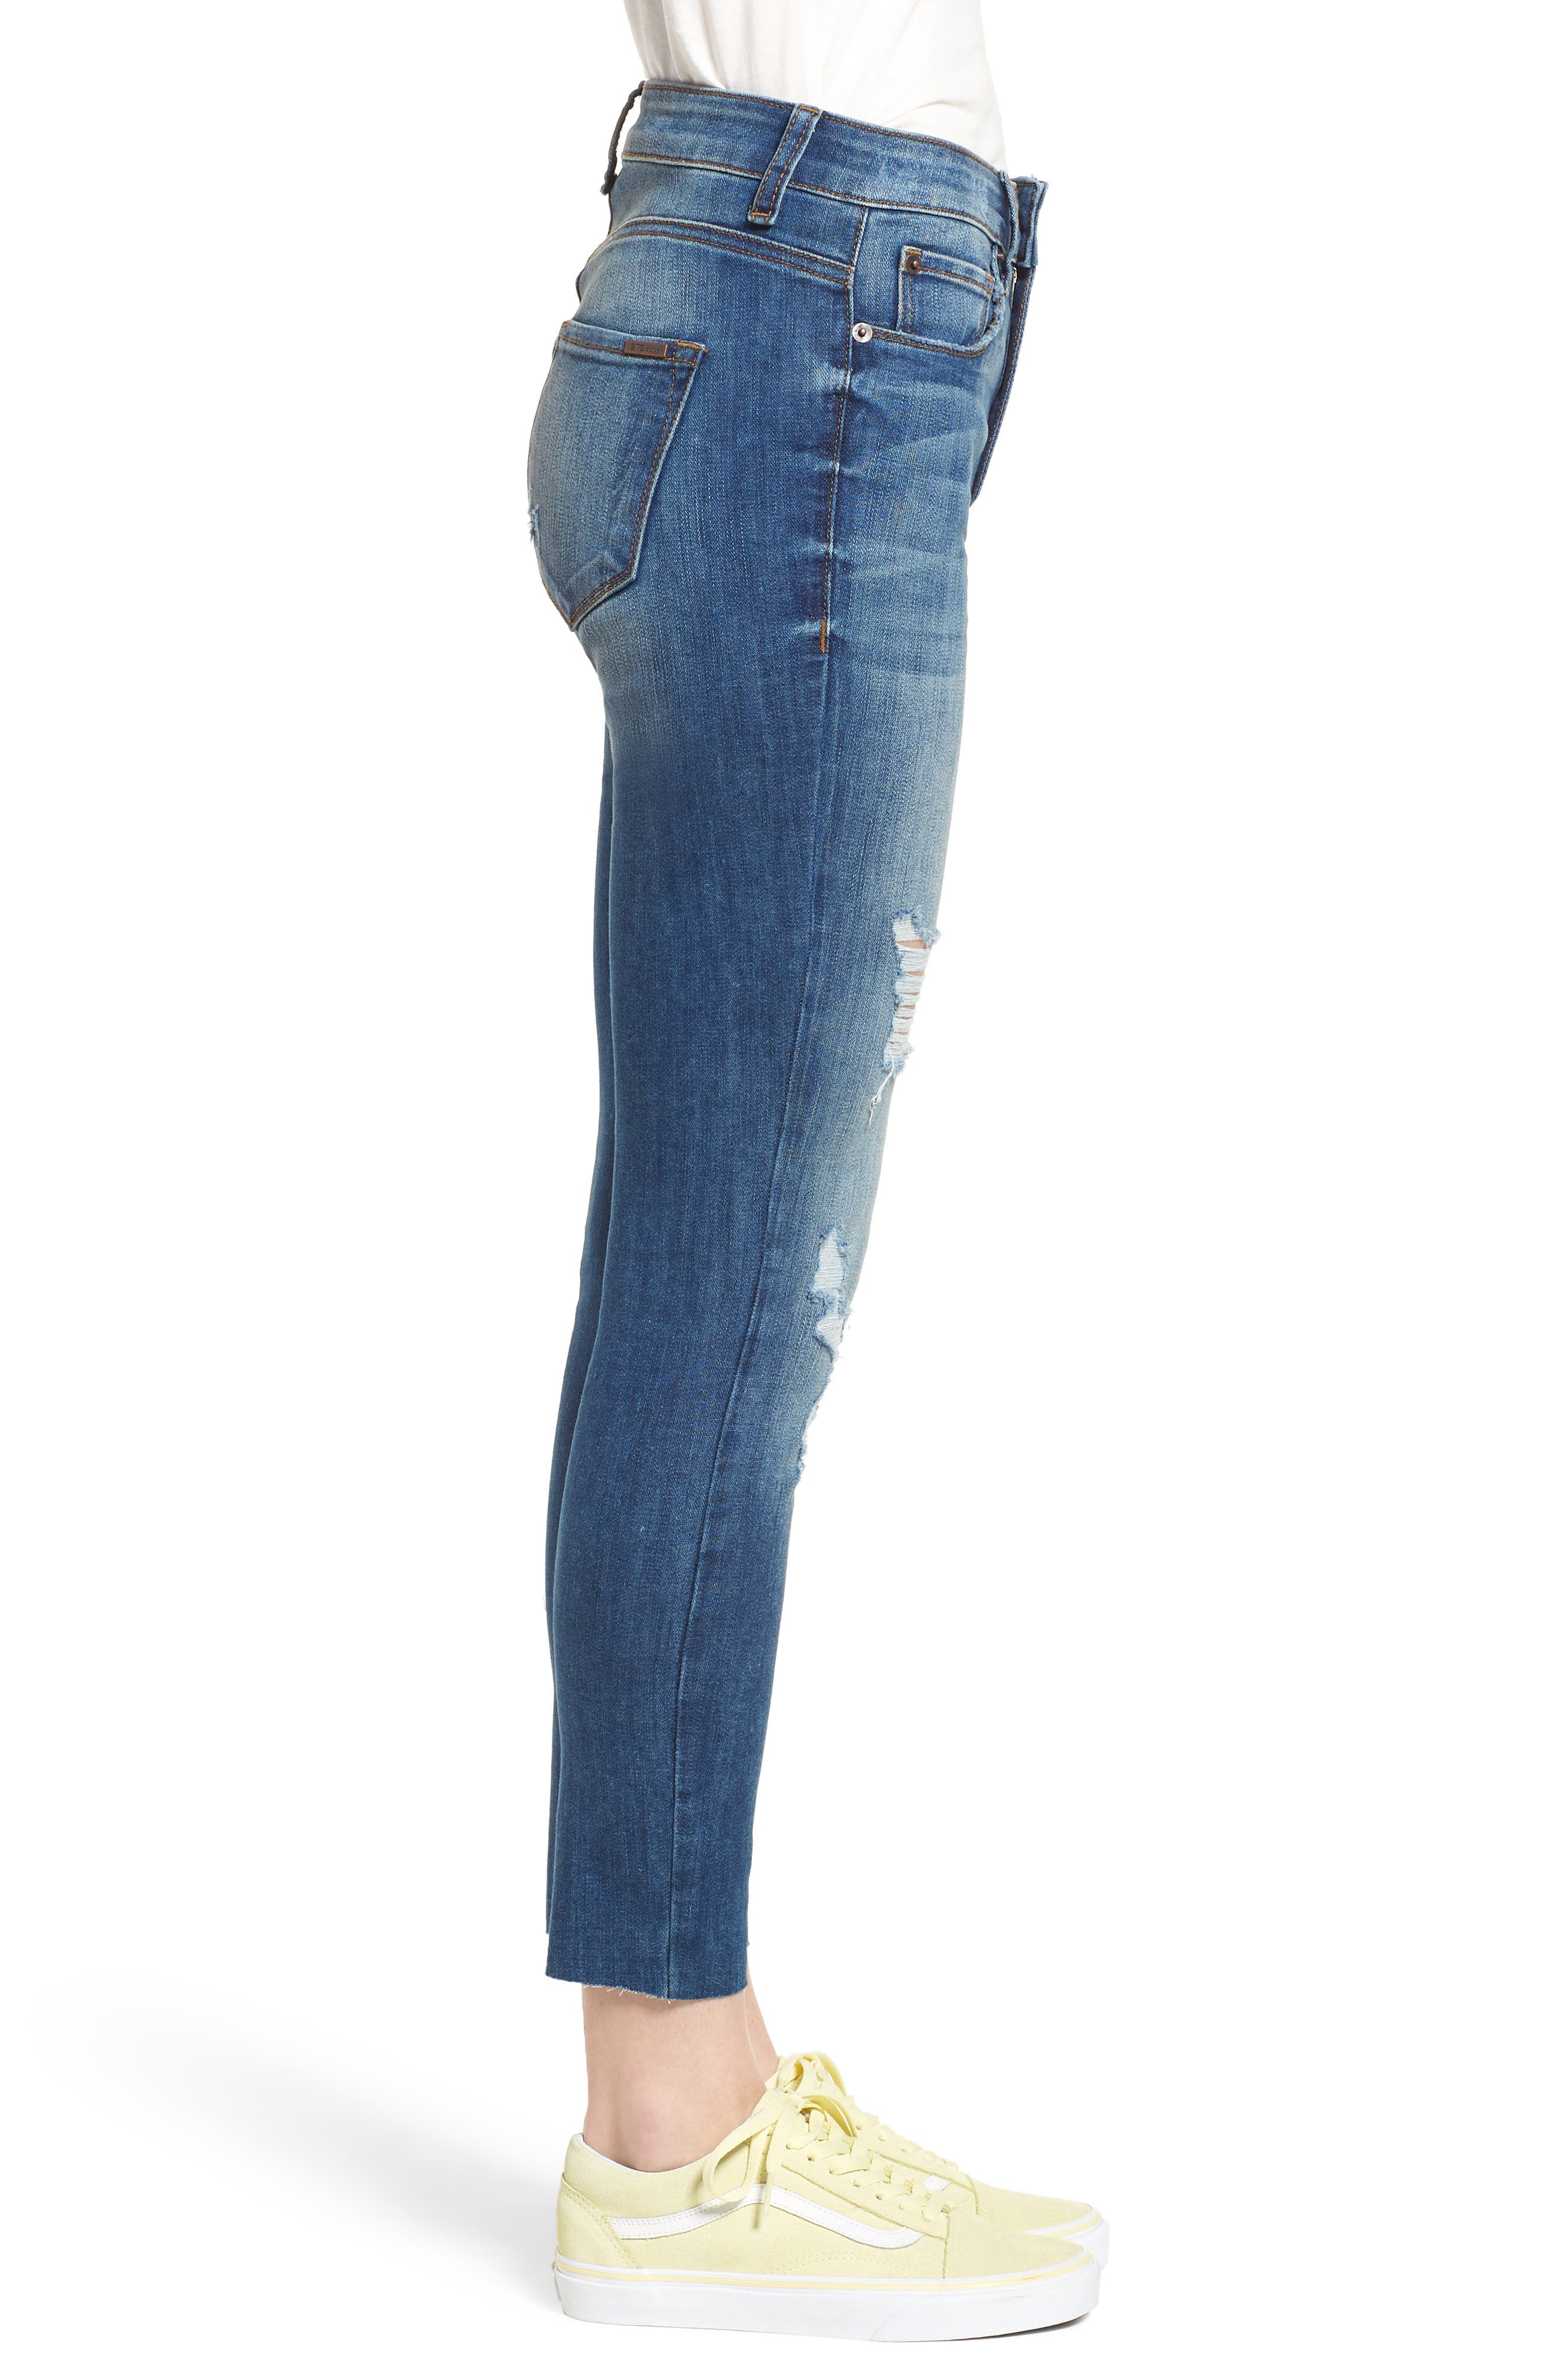 Ellie Ripped High Rise Cropped Jeans,                             Alternate thumbnail 6, color,                             Lamont W/ Med Ba